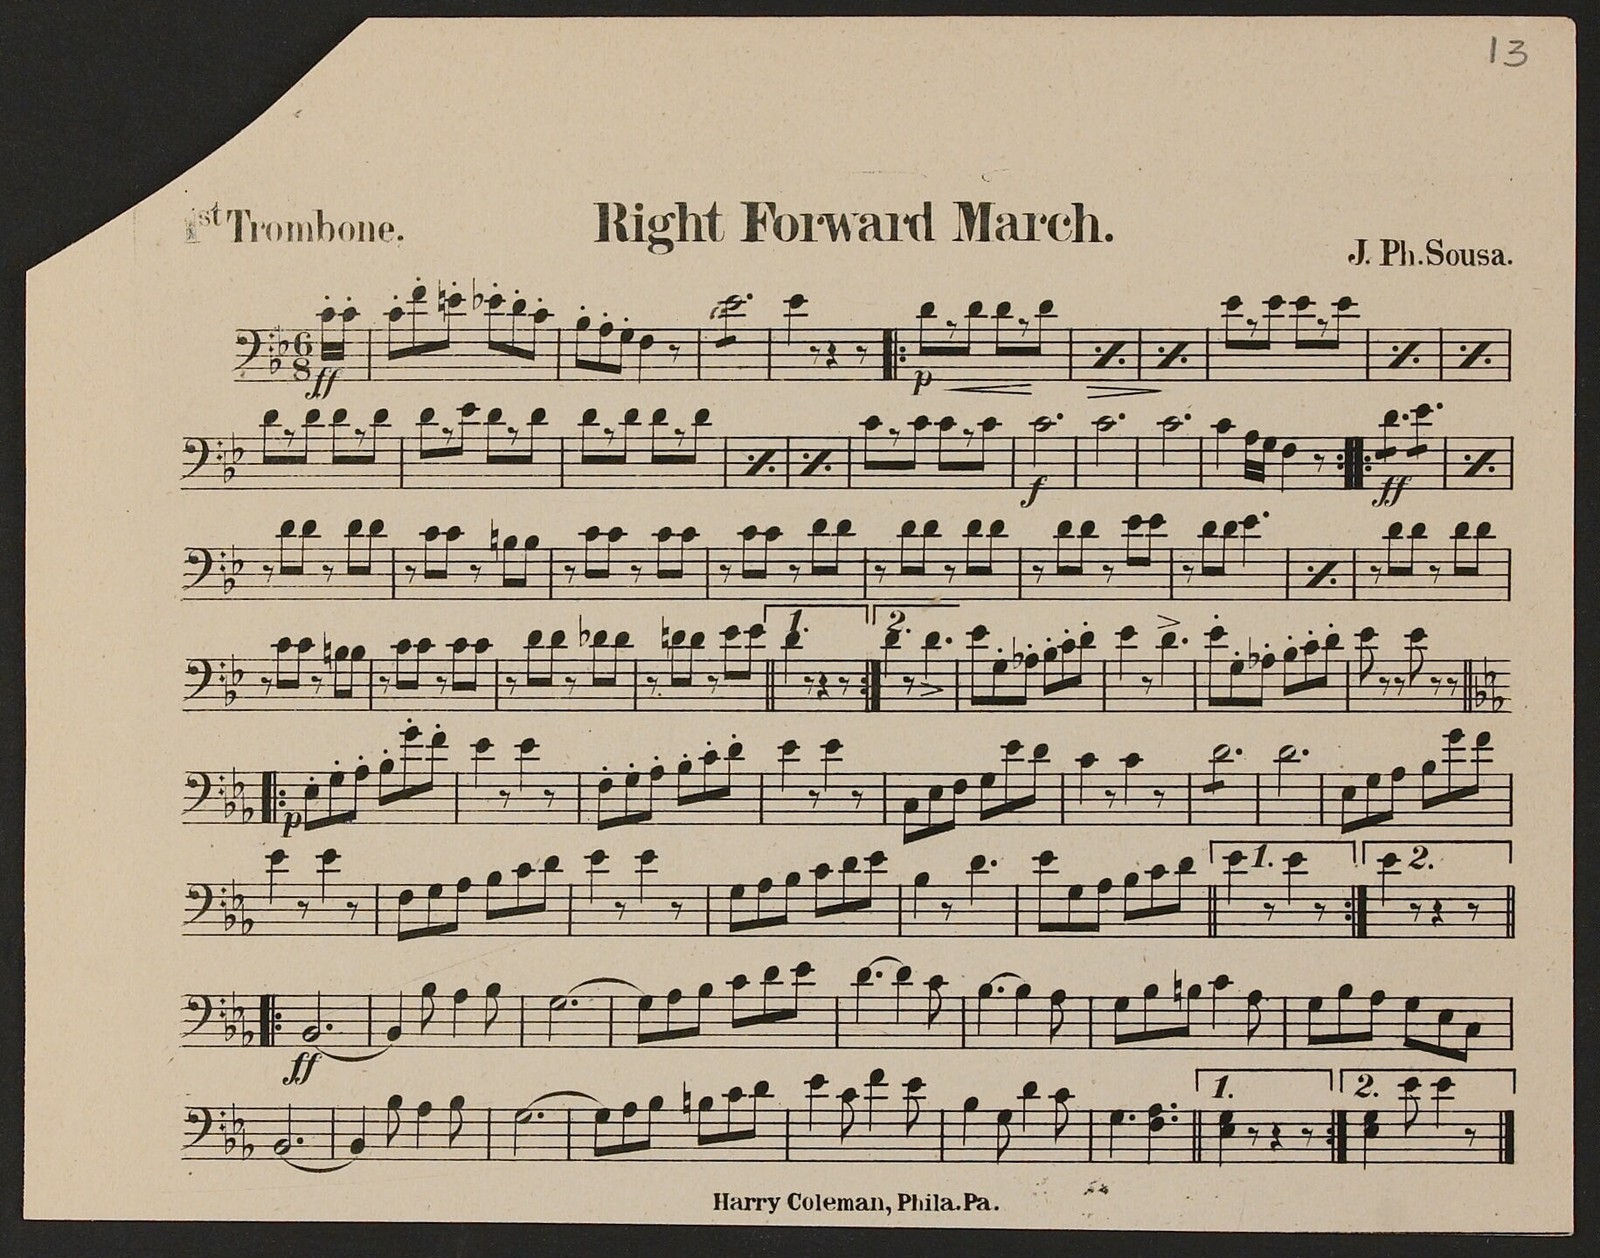 Right Forward March